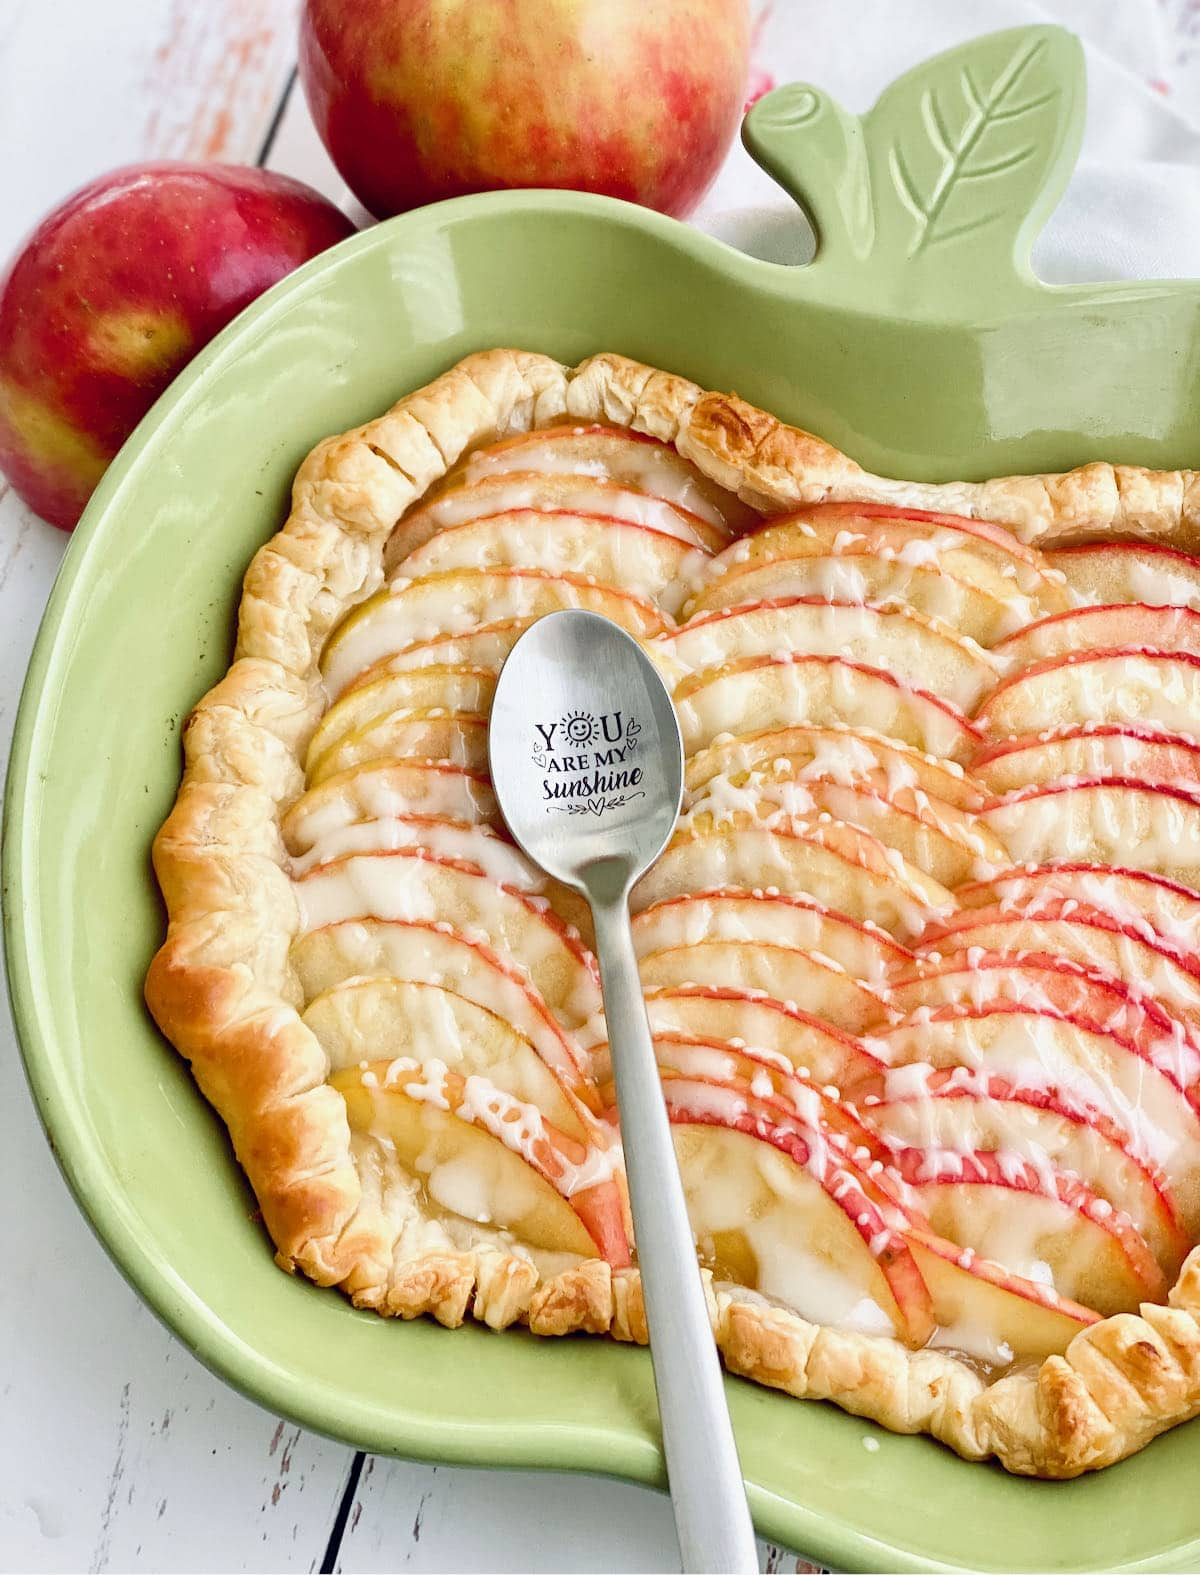 sliced apples arranged on puff pastry in a green apple shaped dish with a spoon on top